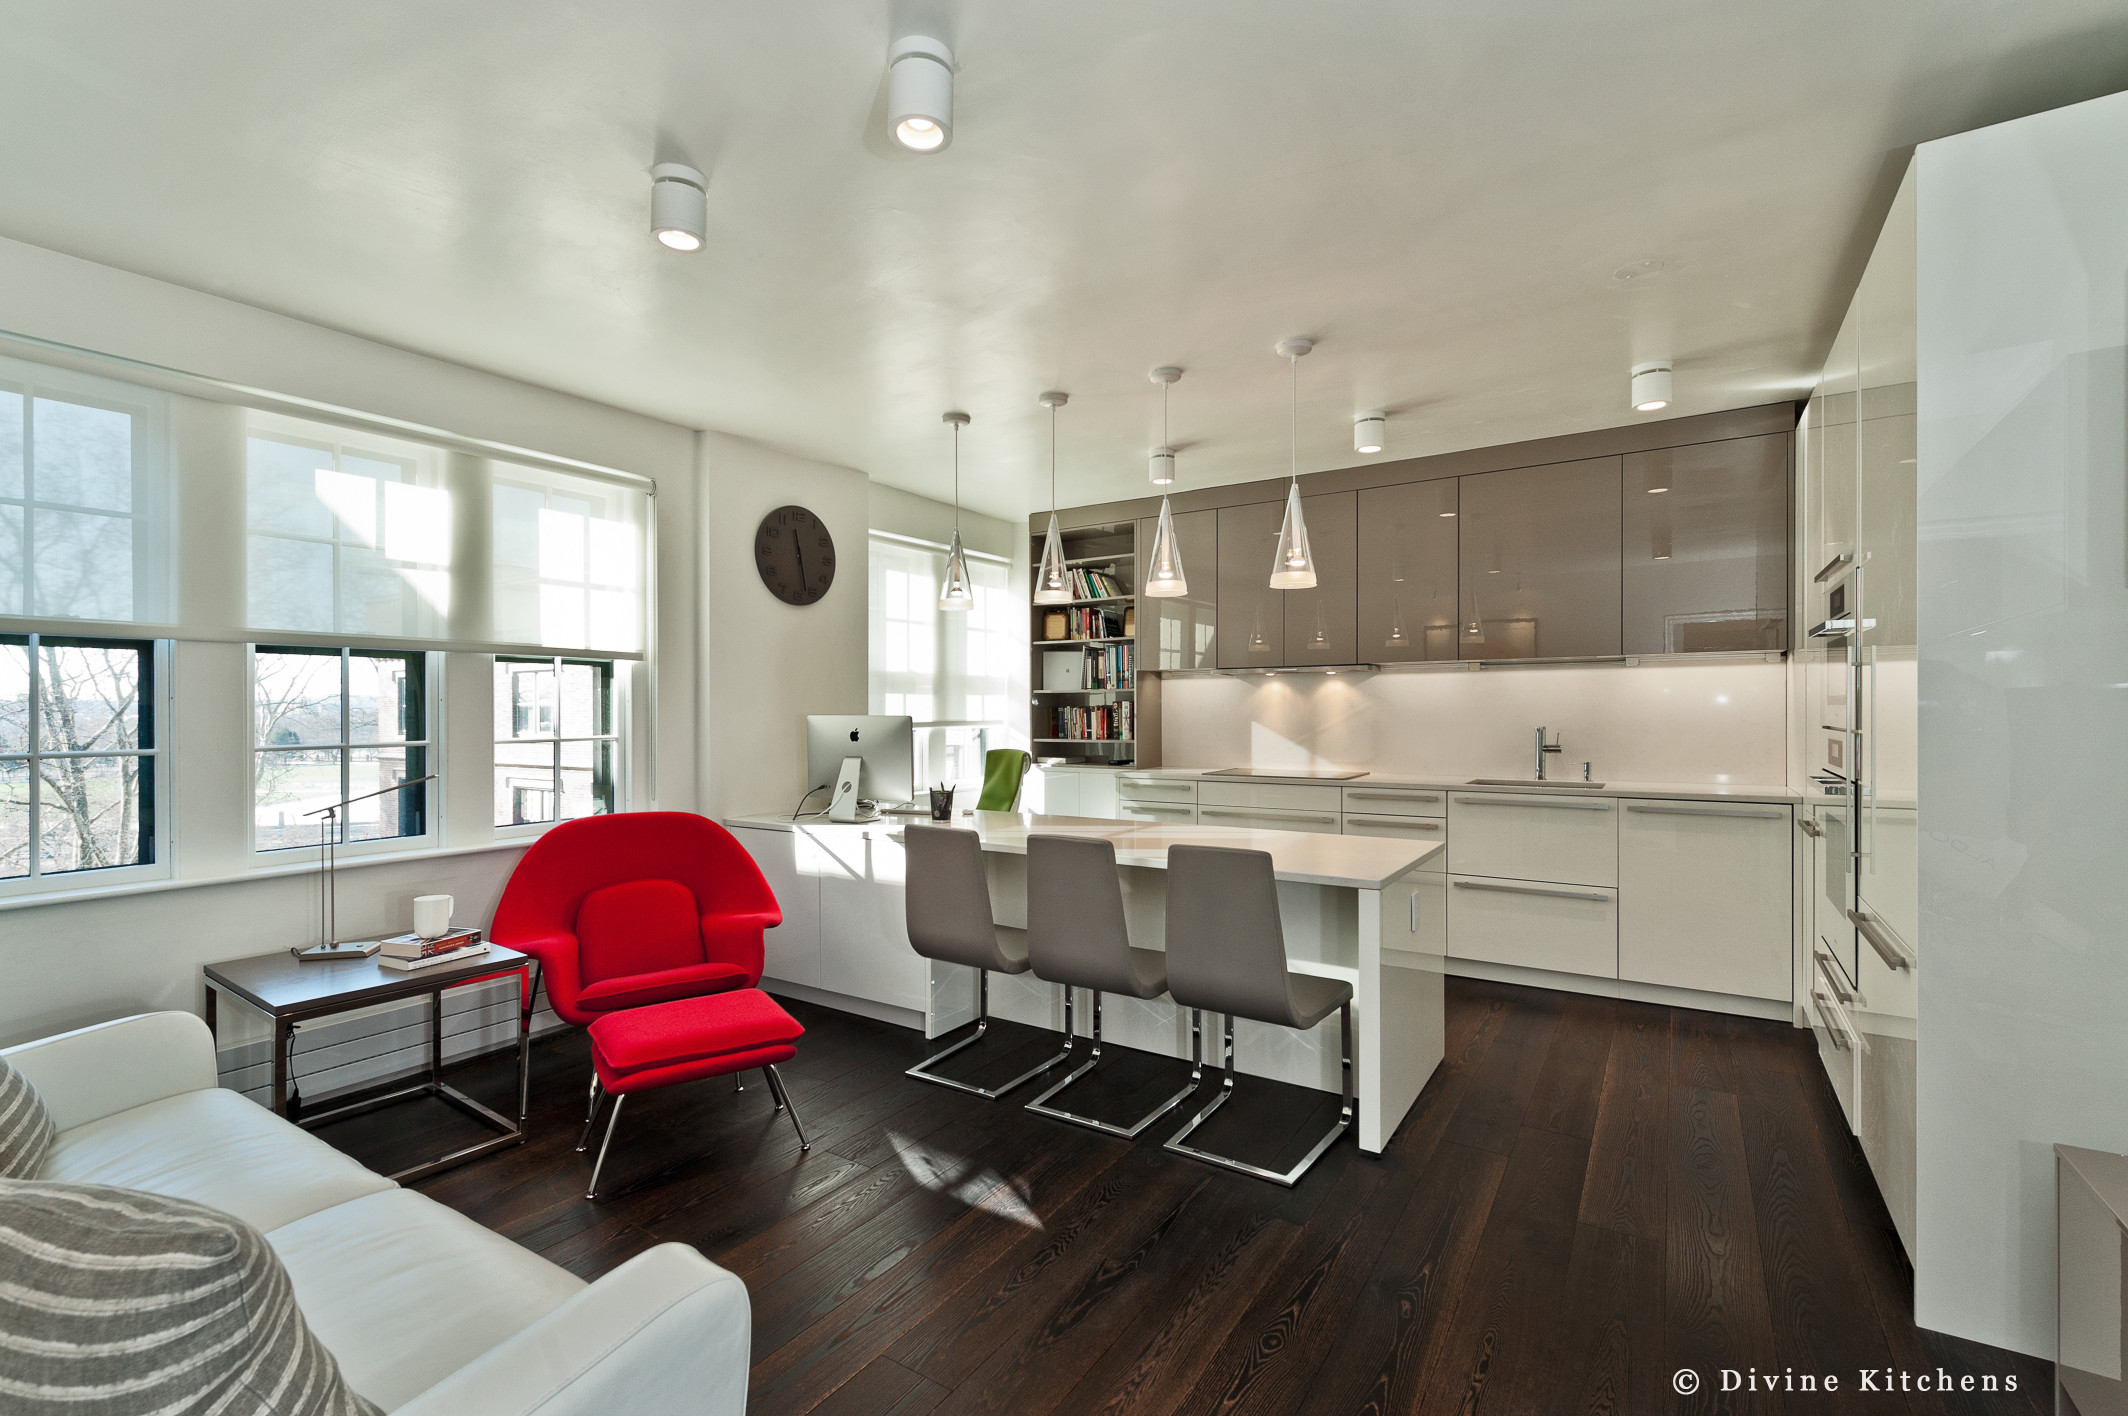 Modern leicht kitchen with white and grey high gloss lacquer cabinets. Red Eames womb chair. Peninsula island with small office area. Miele wall appliances in white.